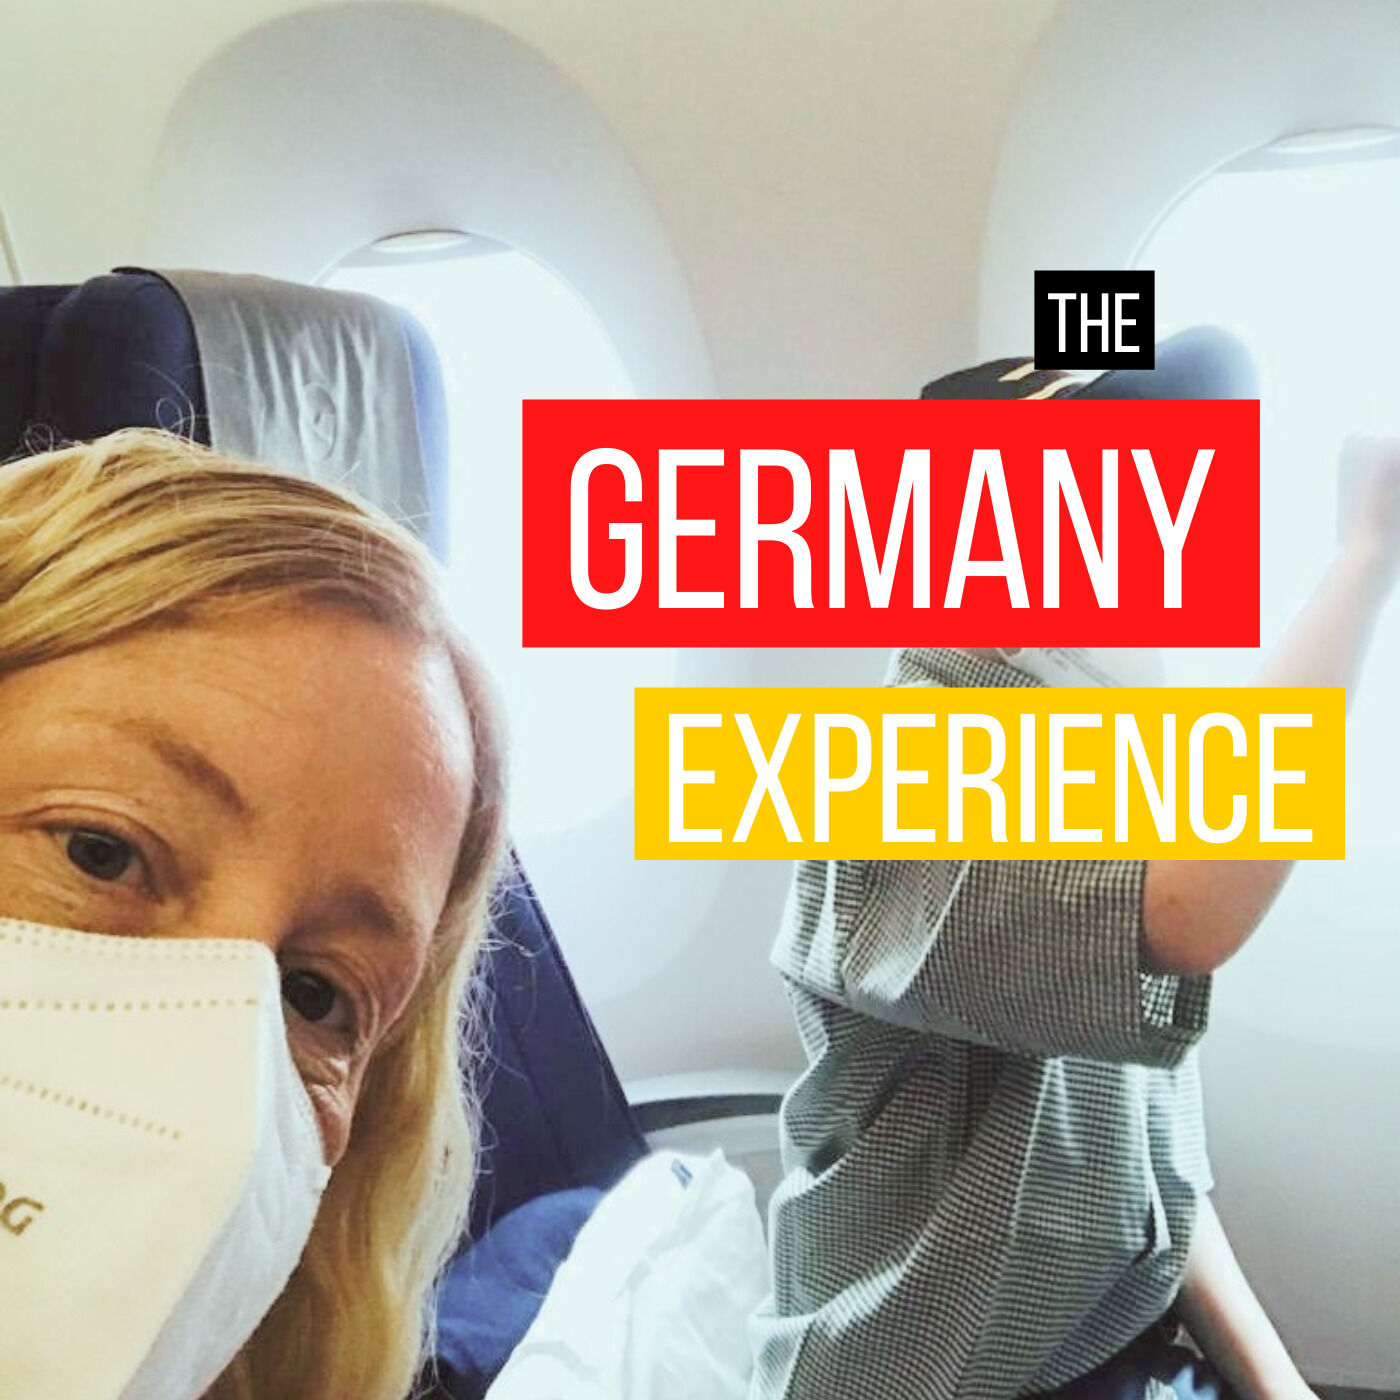 Feeling weighed down by the pandemic, and making the trip back home (Beth from the USA)